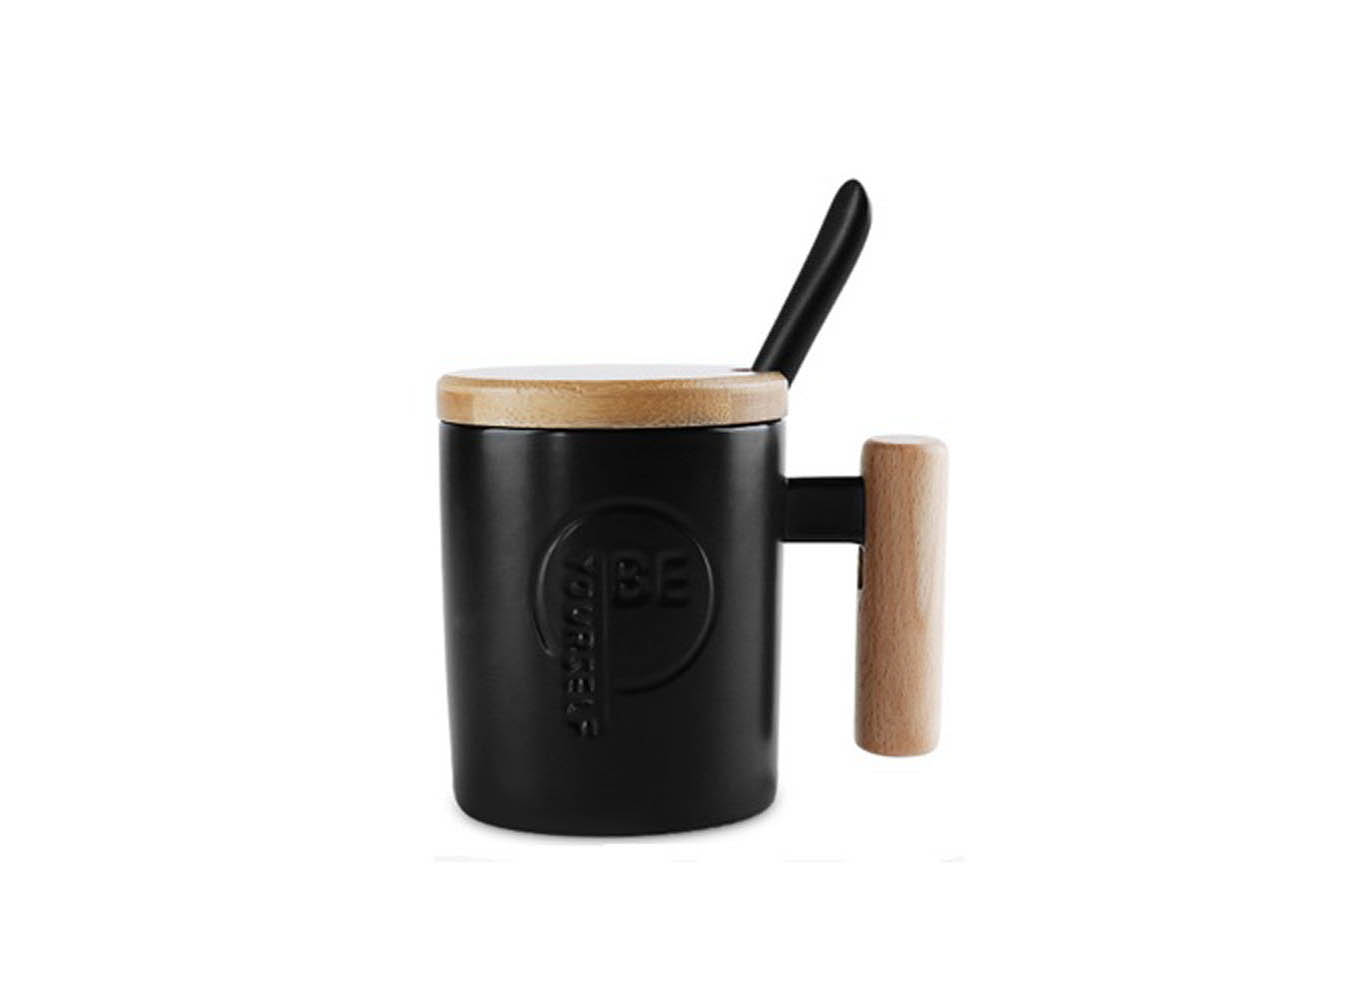 Customized Ceramic Mug w/ Wooden Handle, Lid and Spoon